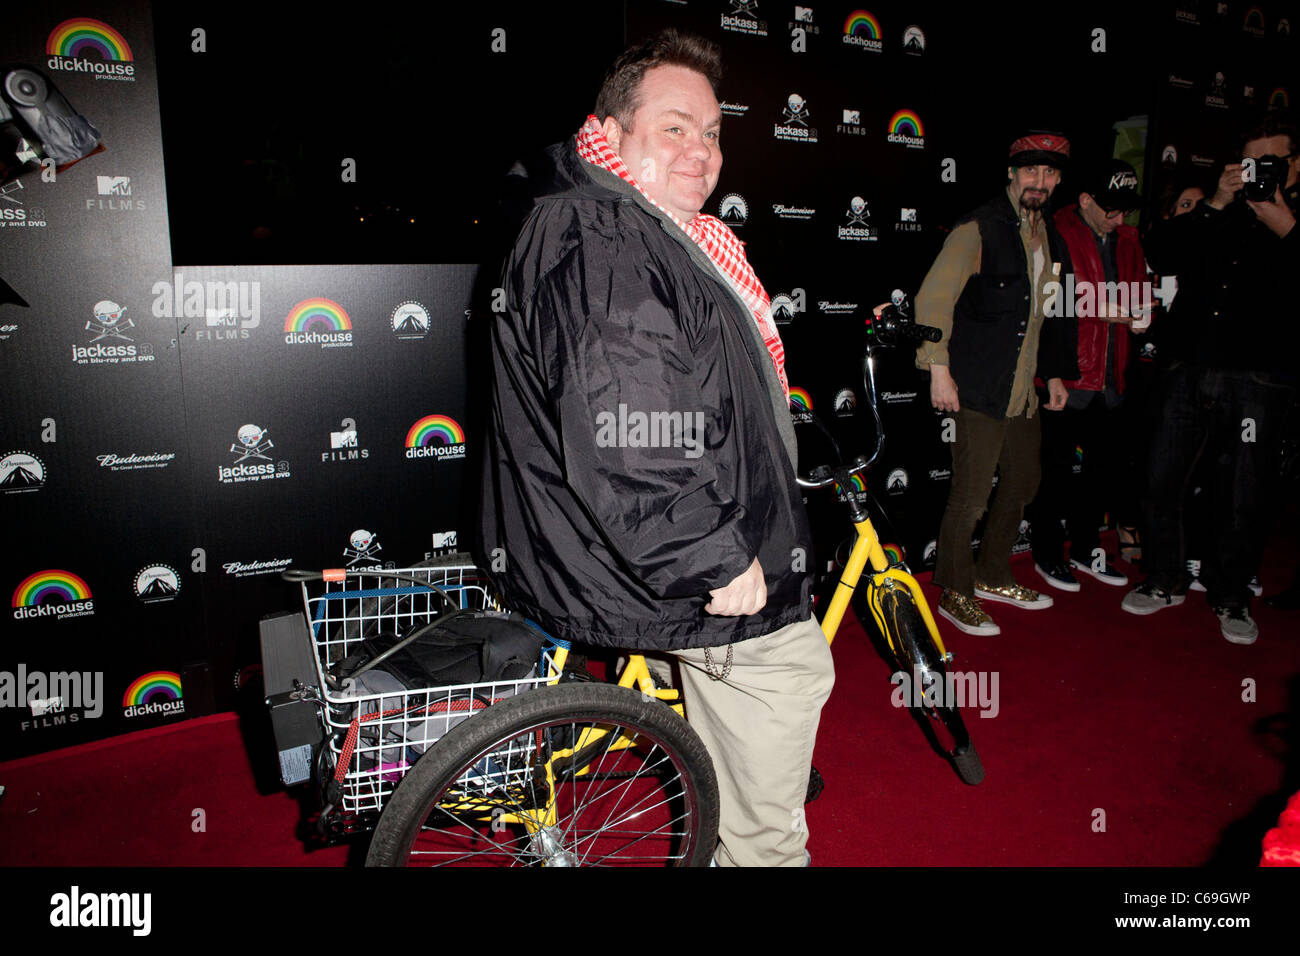 Preston Lacy in attendance for JACKASS 3 Blu-Ray and DVD Debut Release, Paramount Studios, Los Angeles, CA March - Stock Image